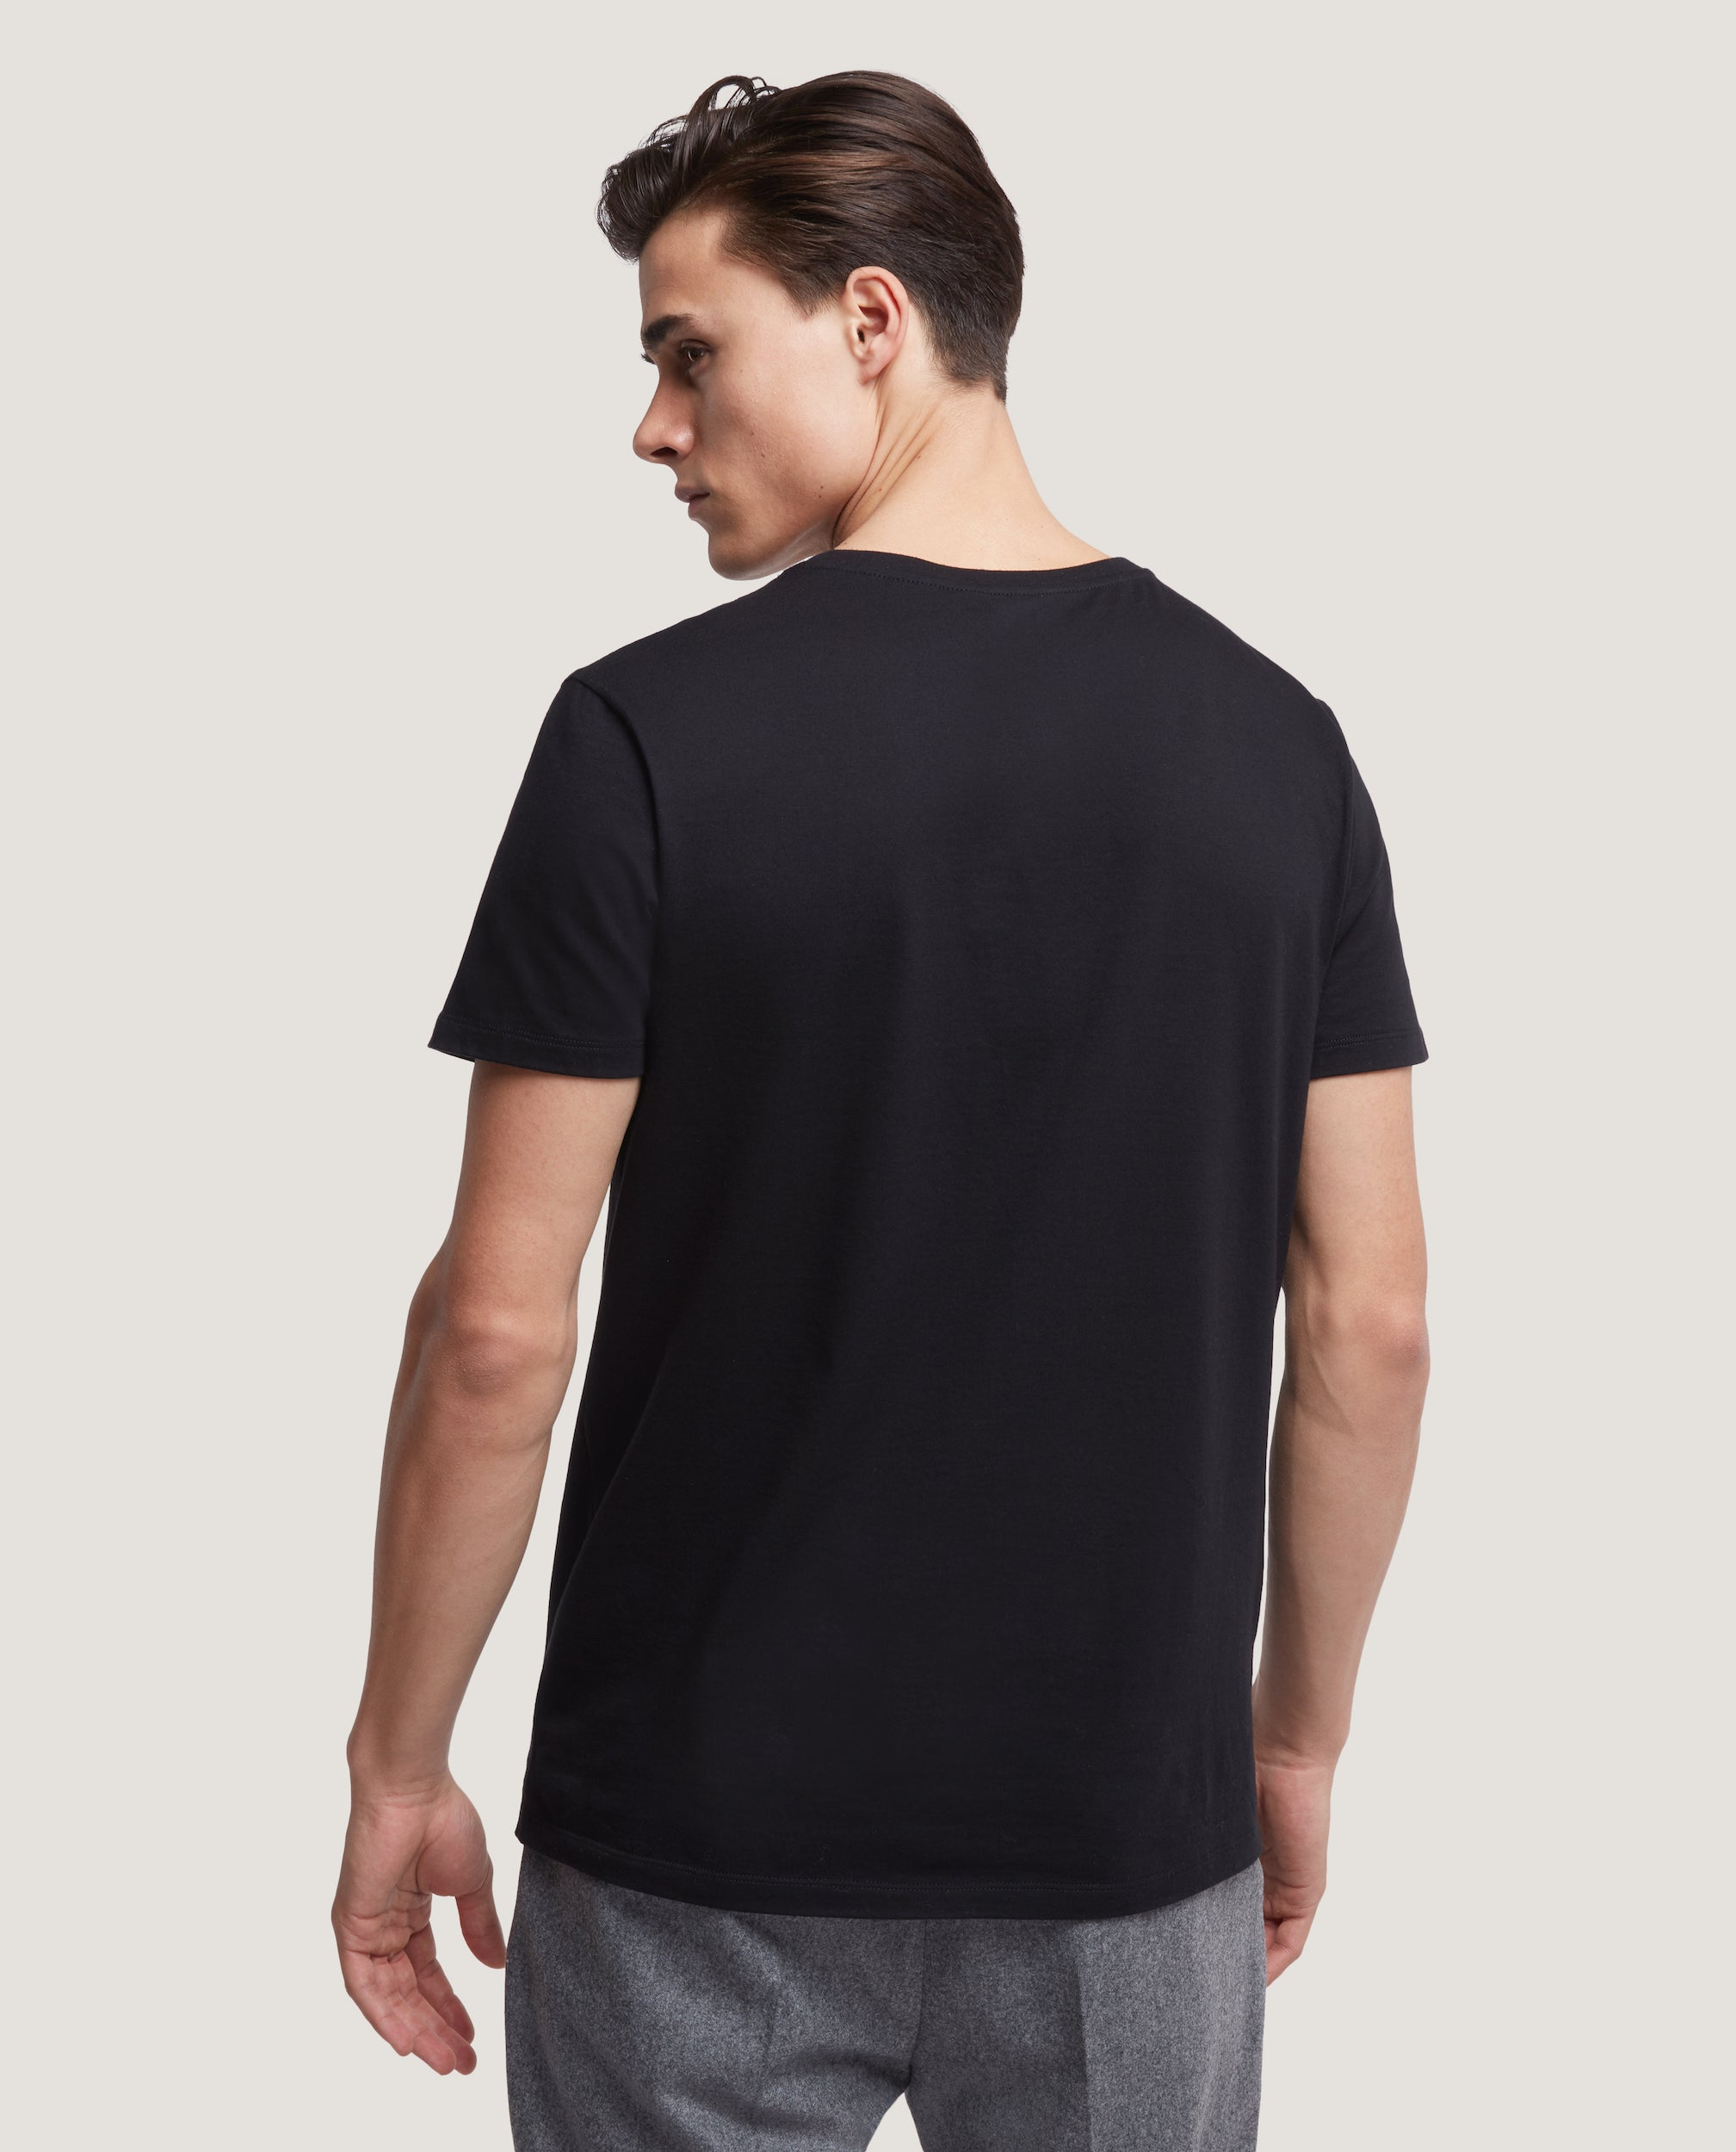 LOTHAR T-shirt | Cotton | Black